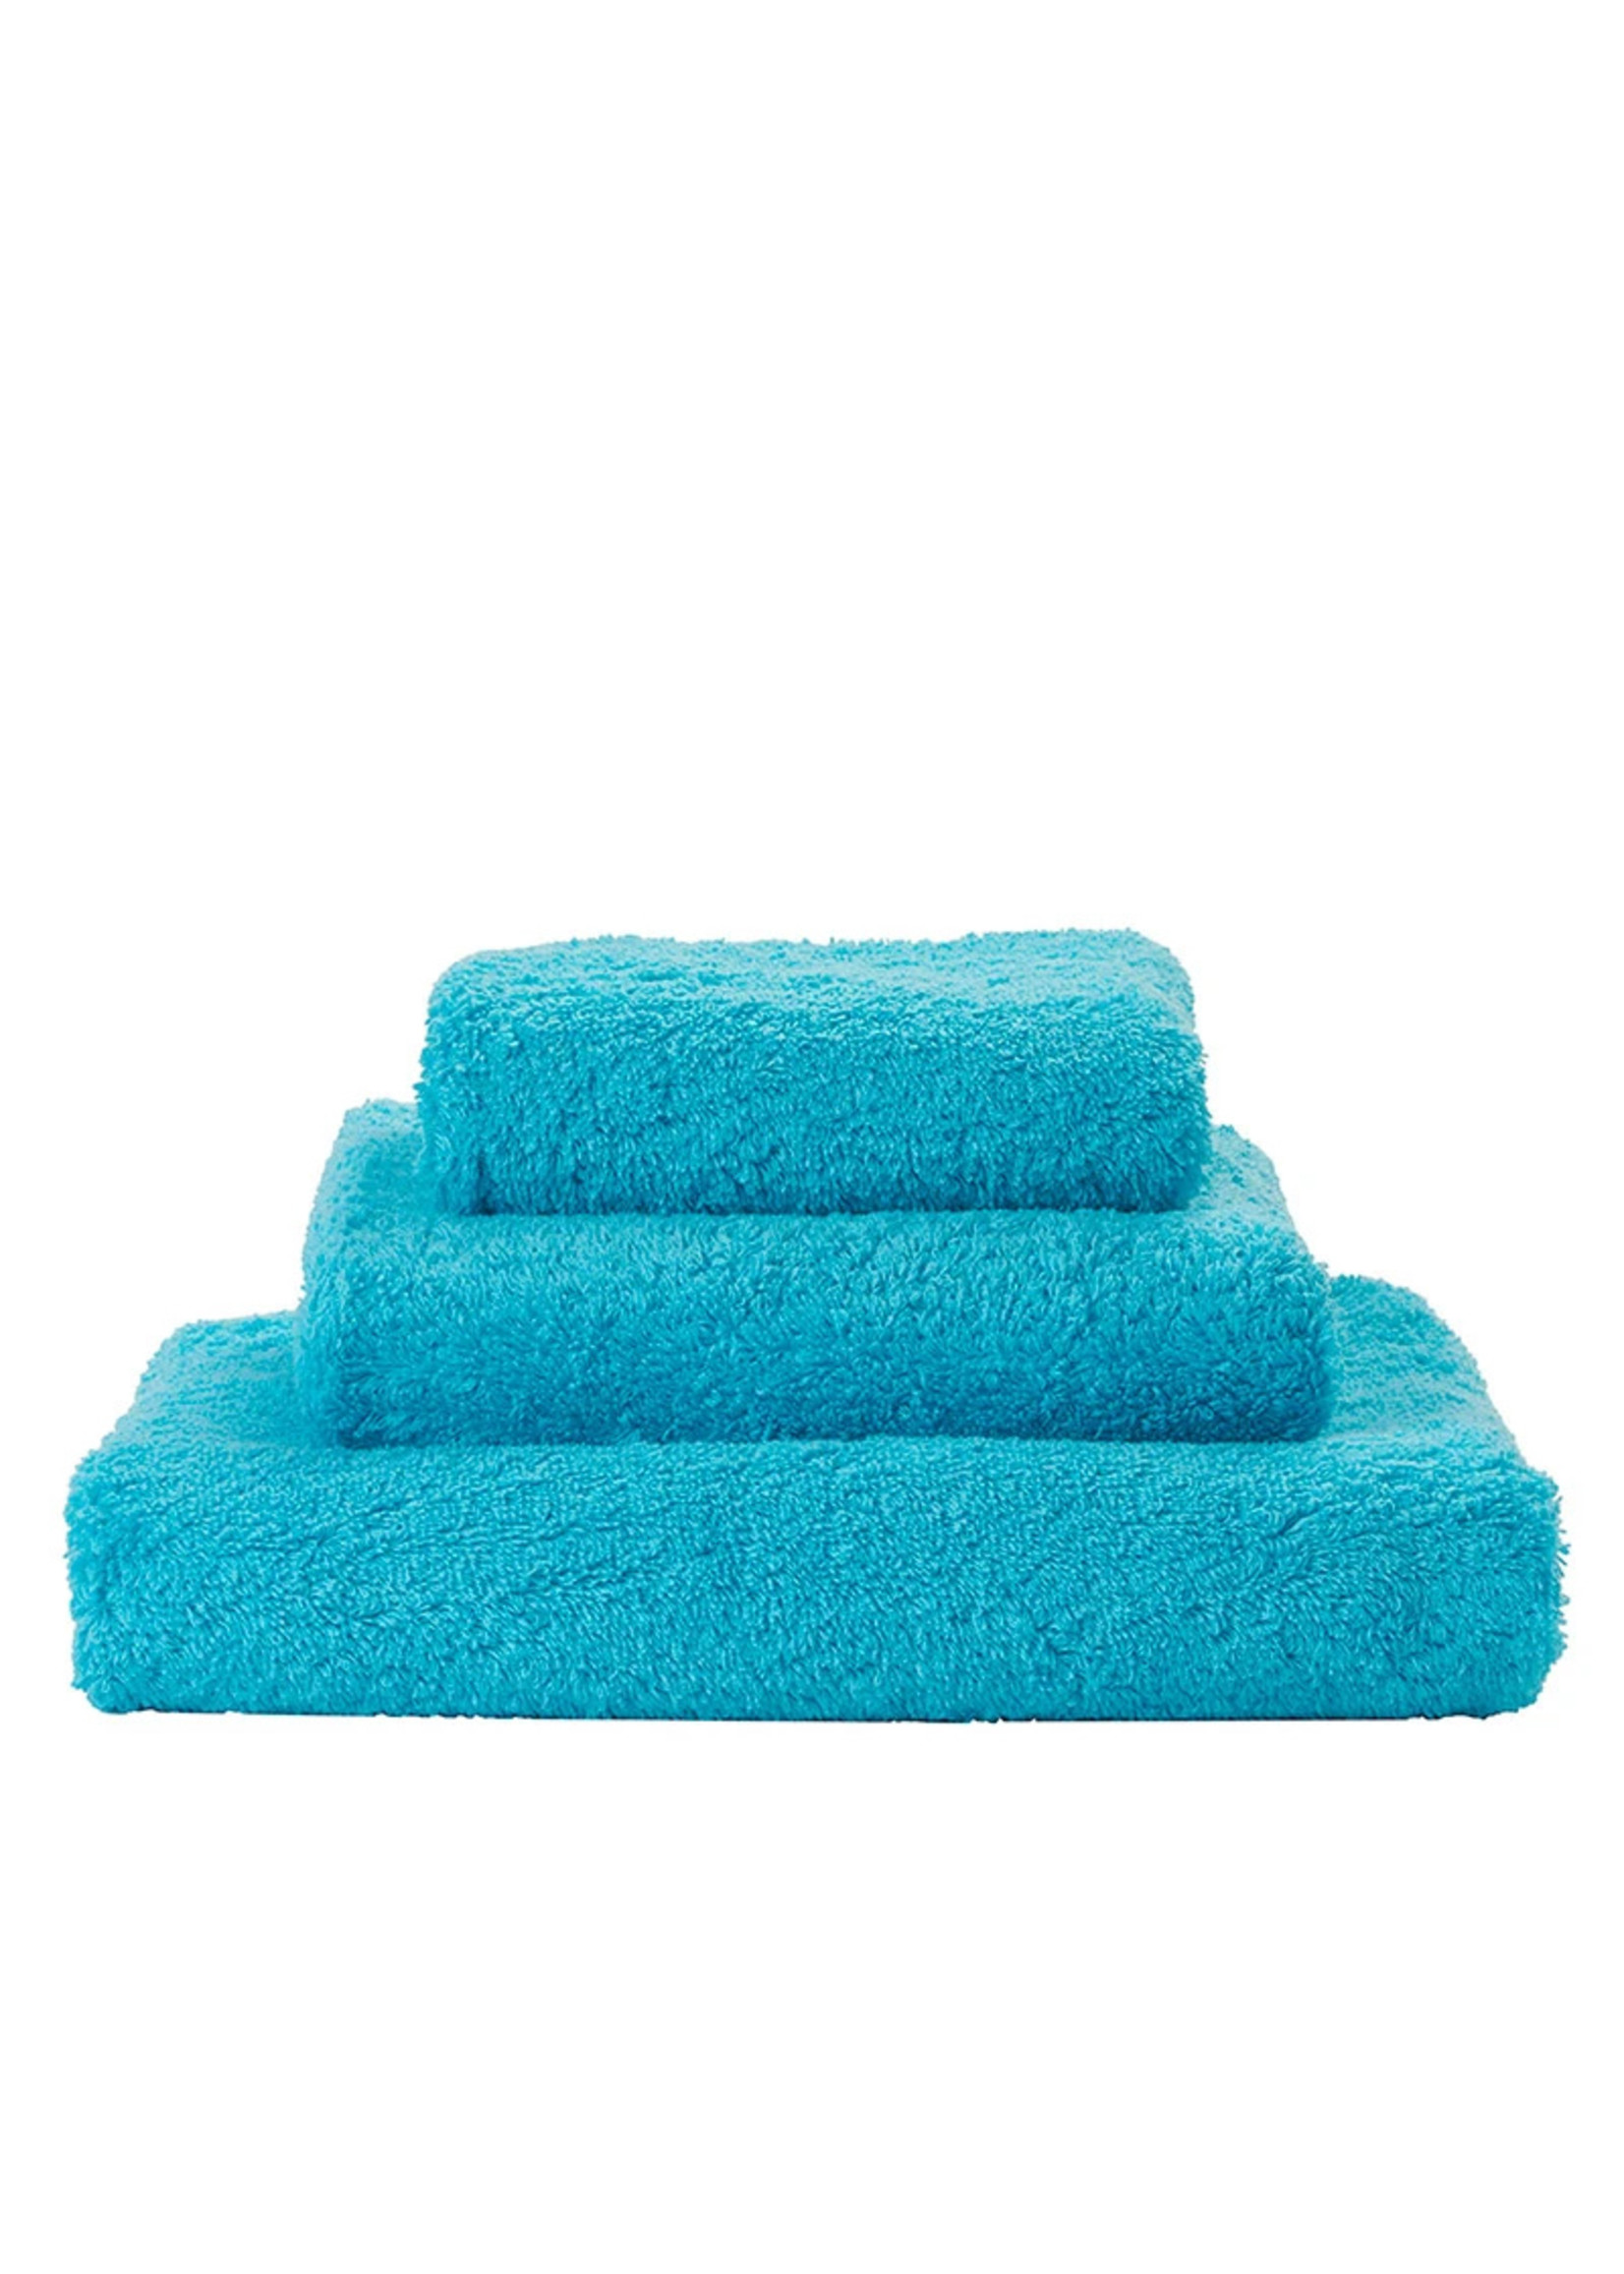 Abyss & Habidecor Super Pile Turquoise Towels